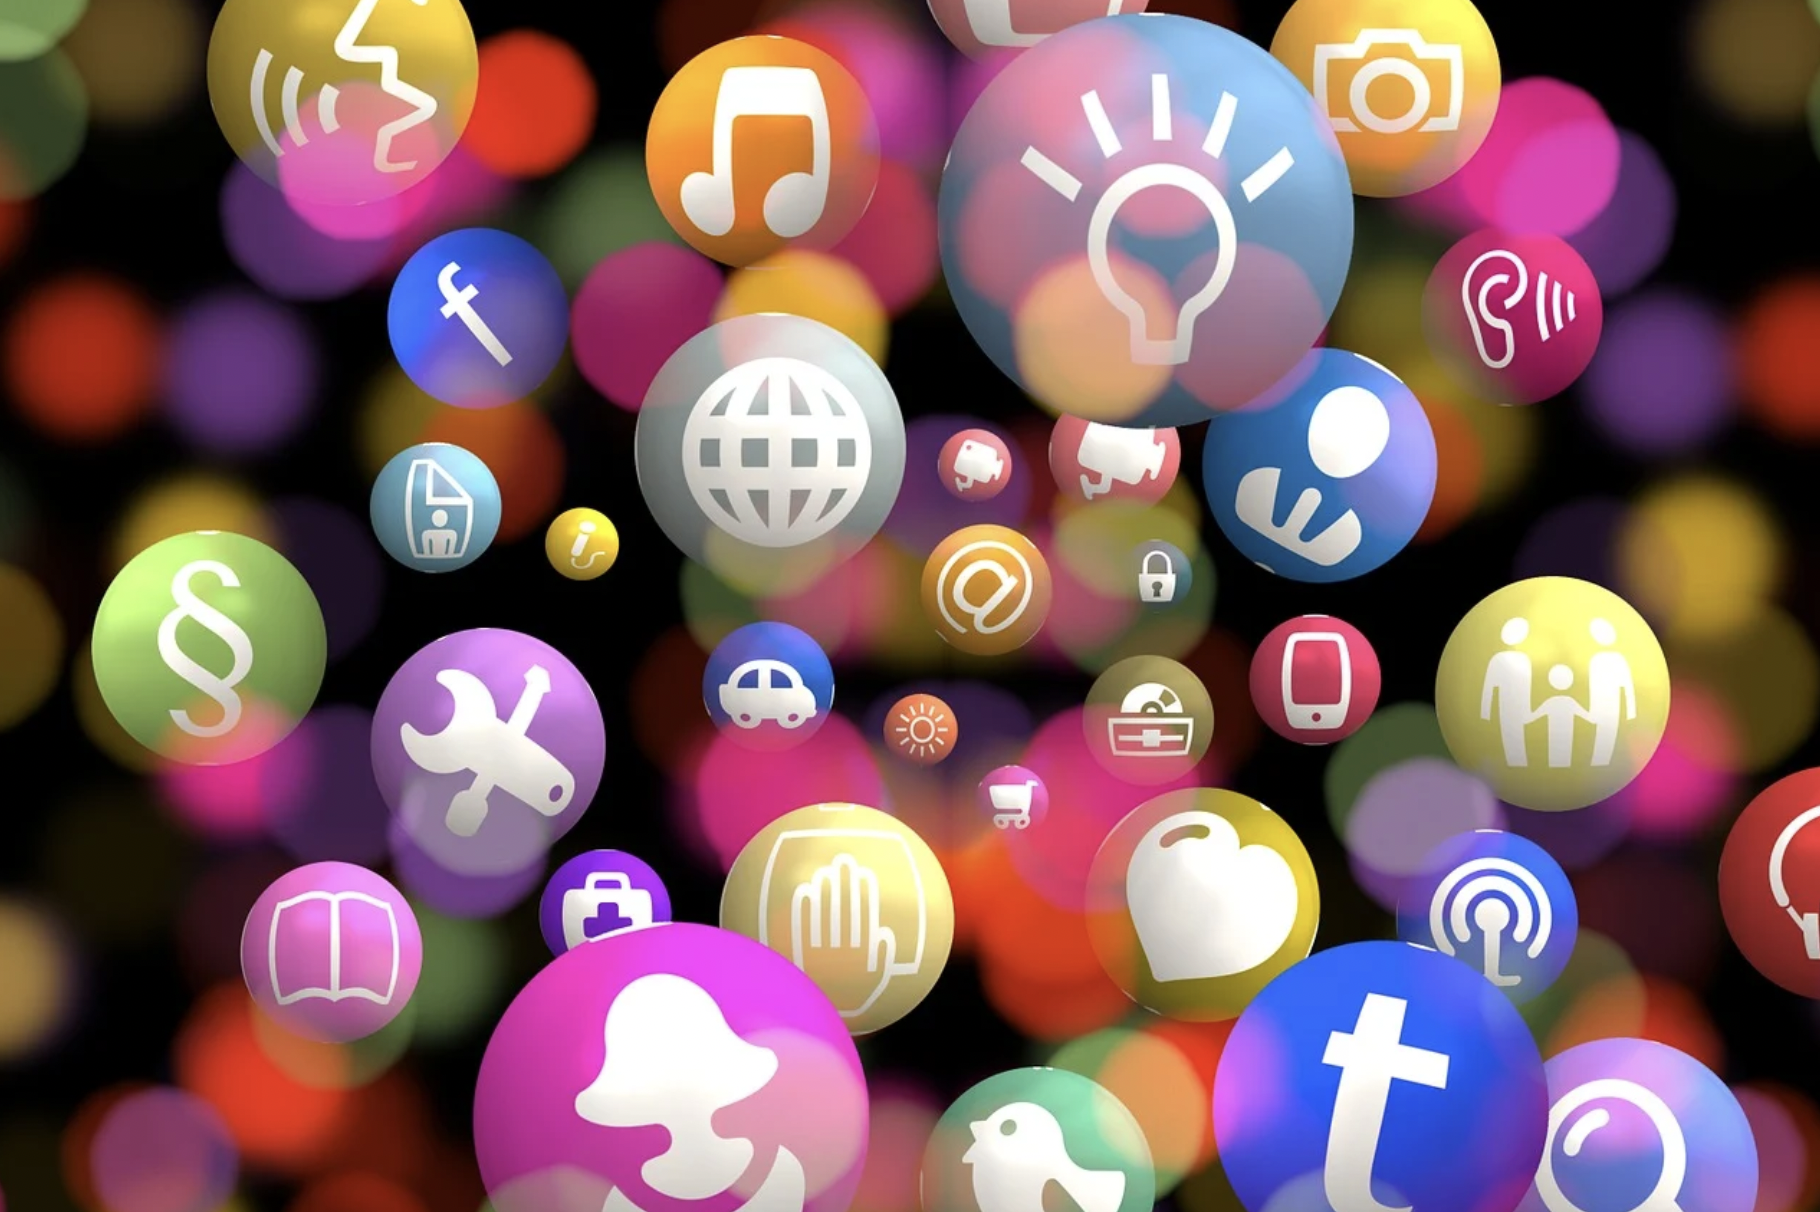 How social media agency, Mondays, uses Iconosquare to improve organization and efficiency